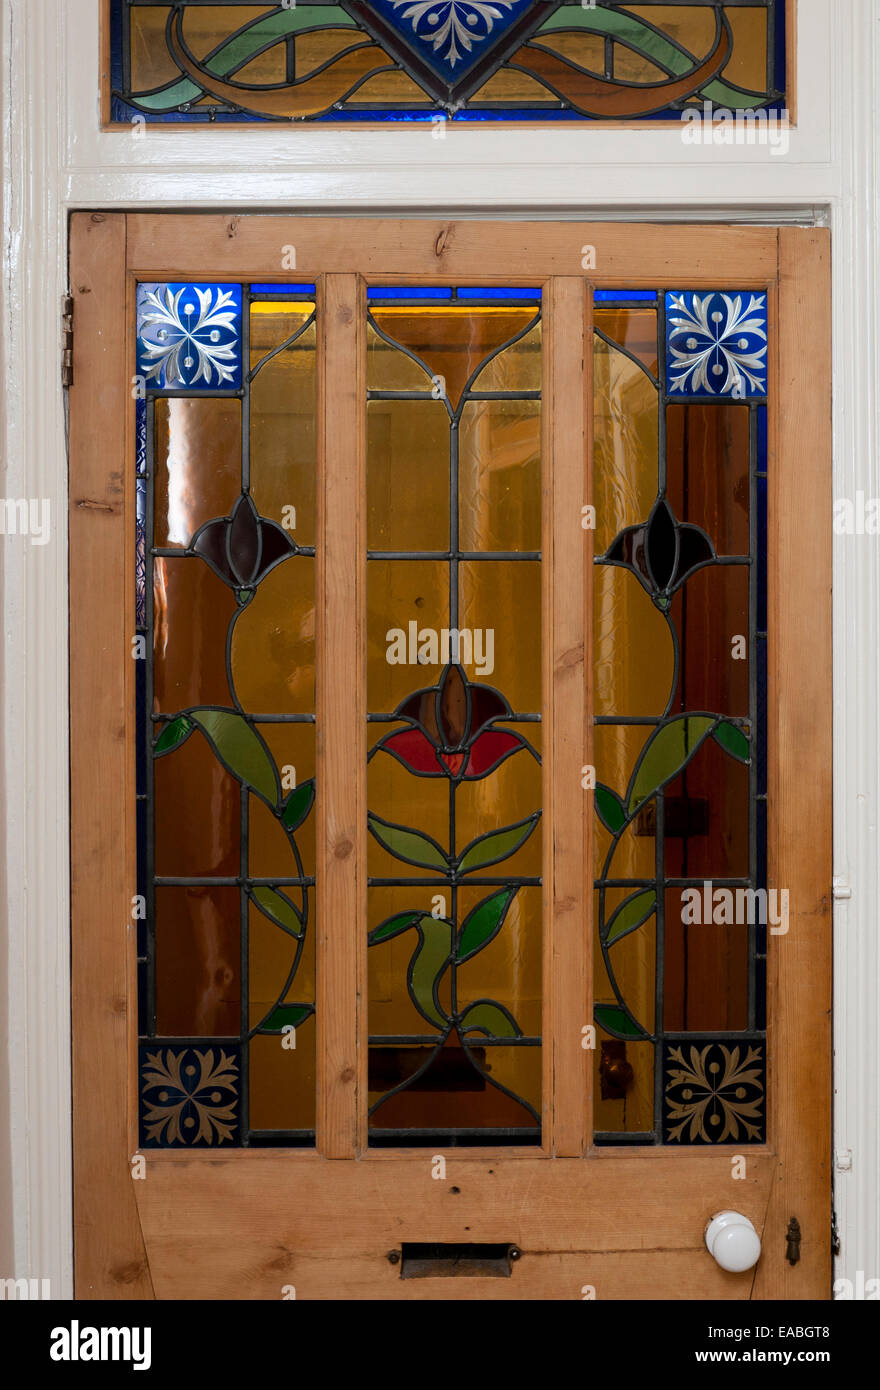 Stripped Wooden Door With Stained Glass Panels In A Victorian Terrace House